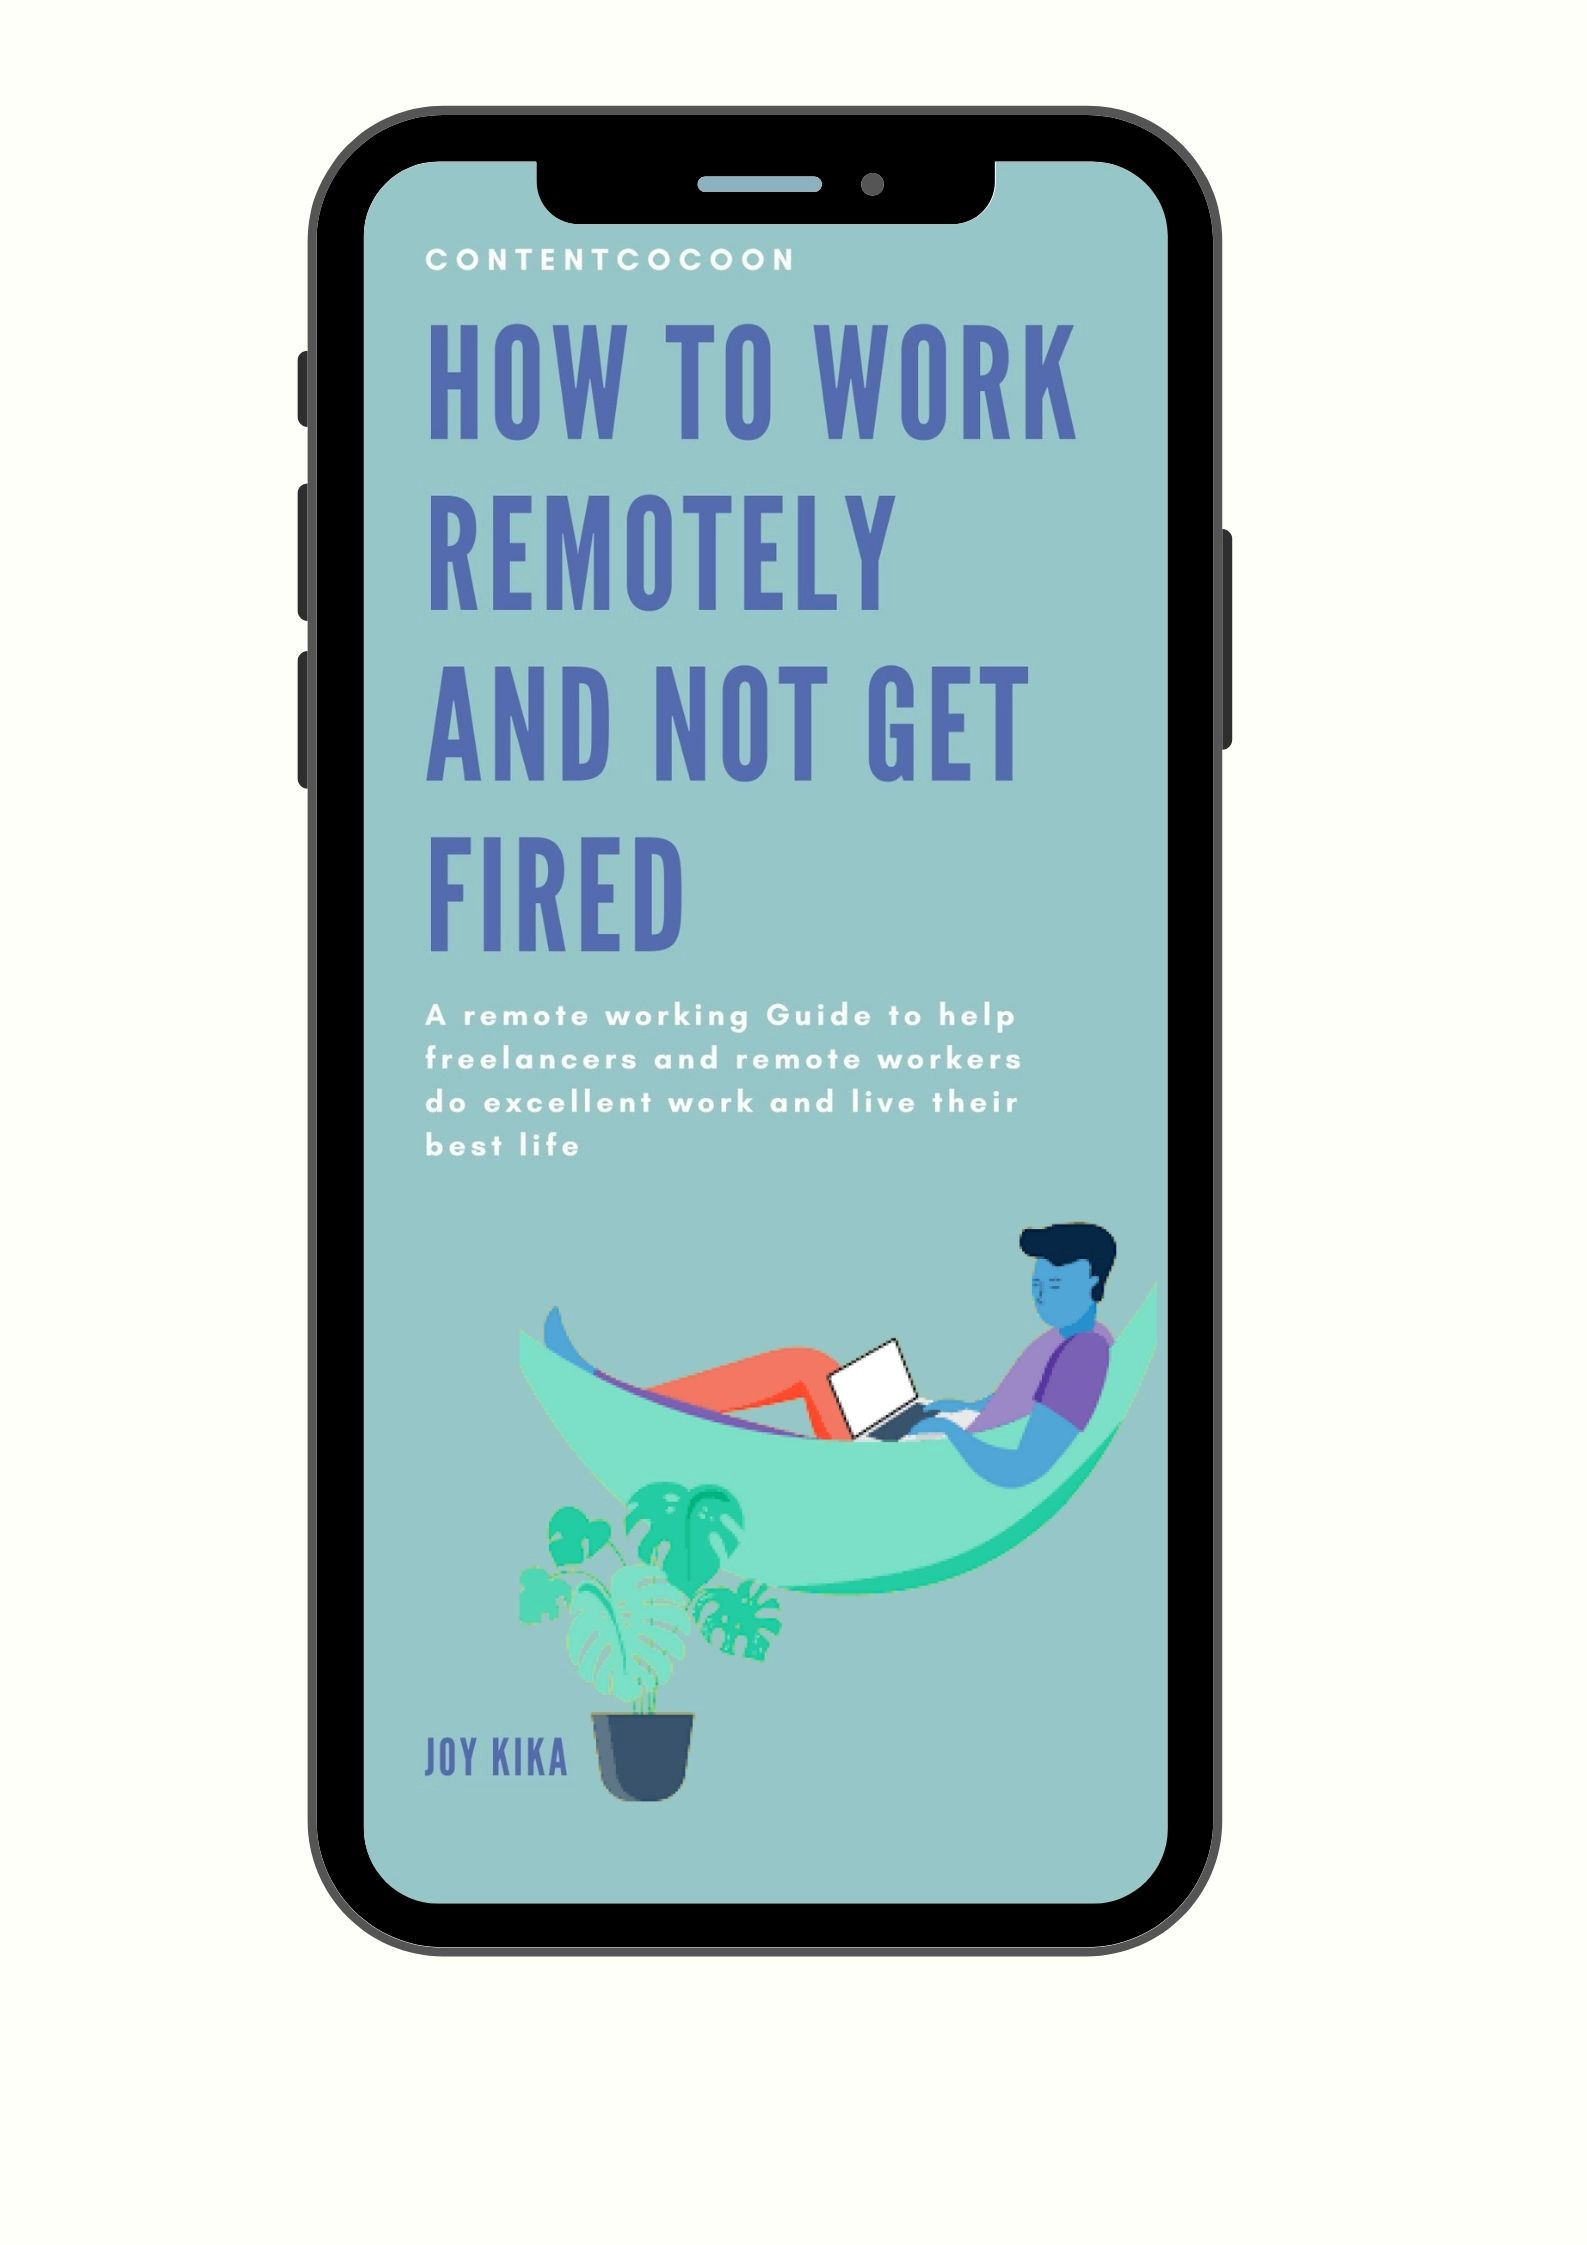 An ebook about working remotely being displayed on a mobile screen